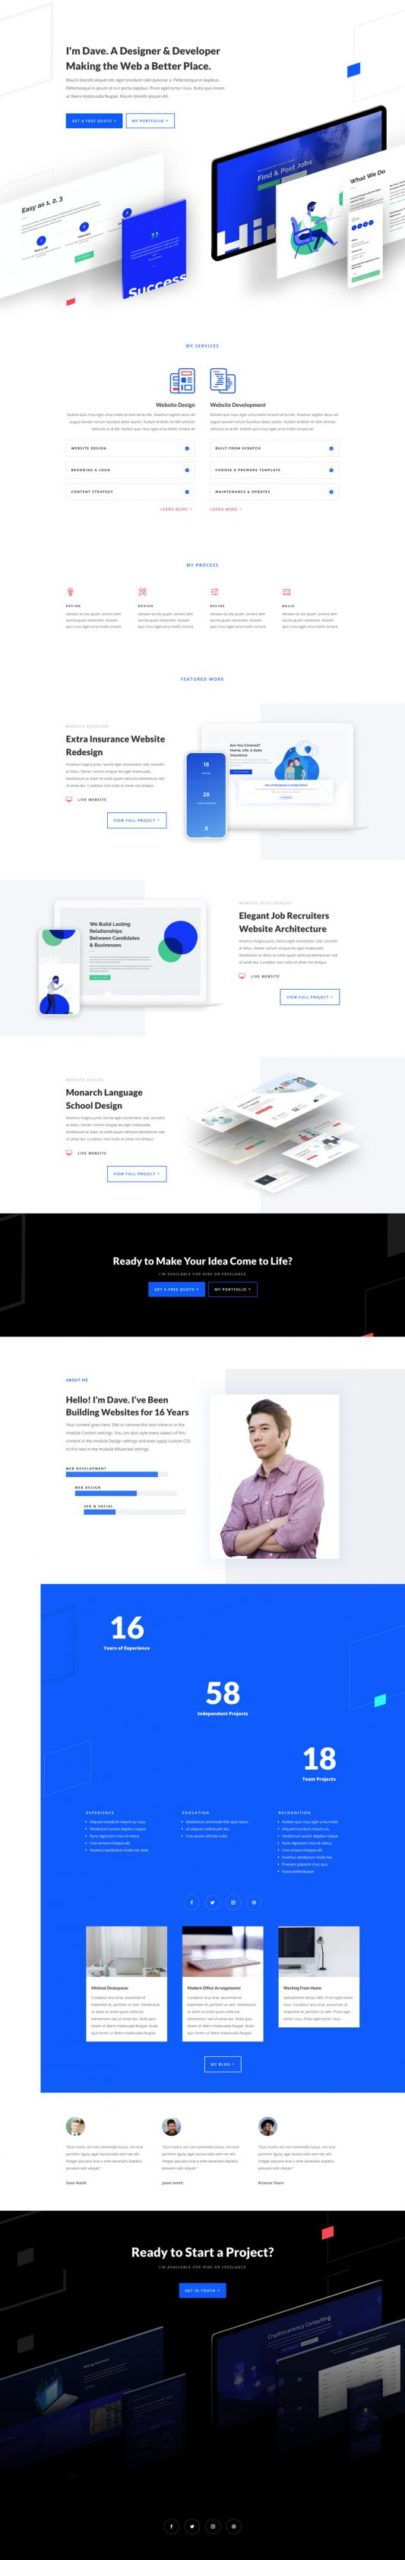 Web Freelancer Landing Page